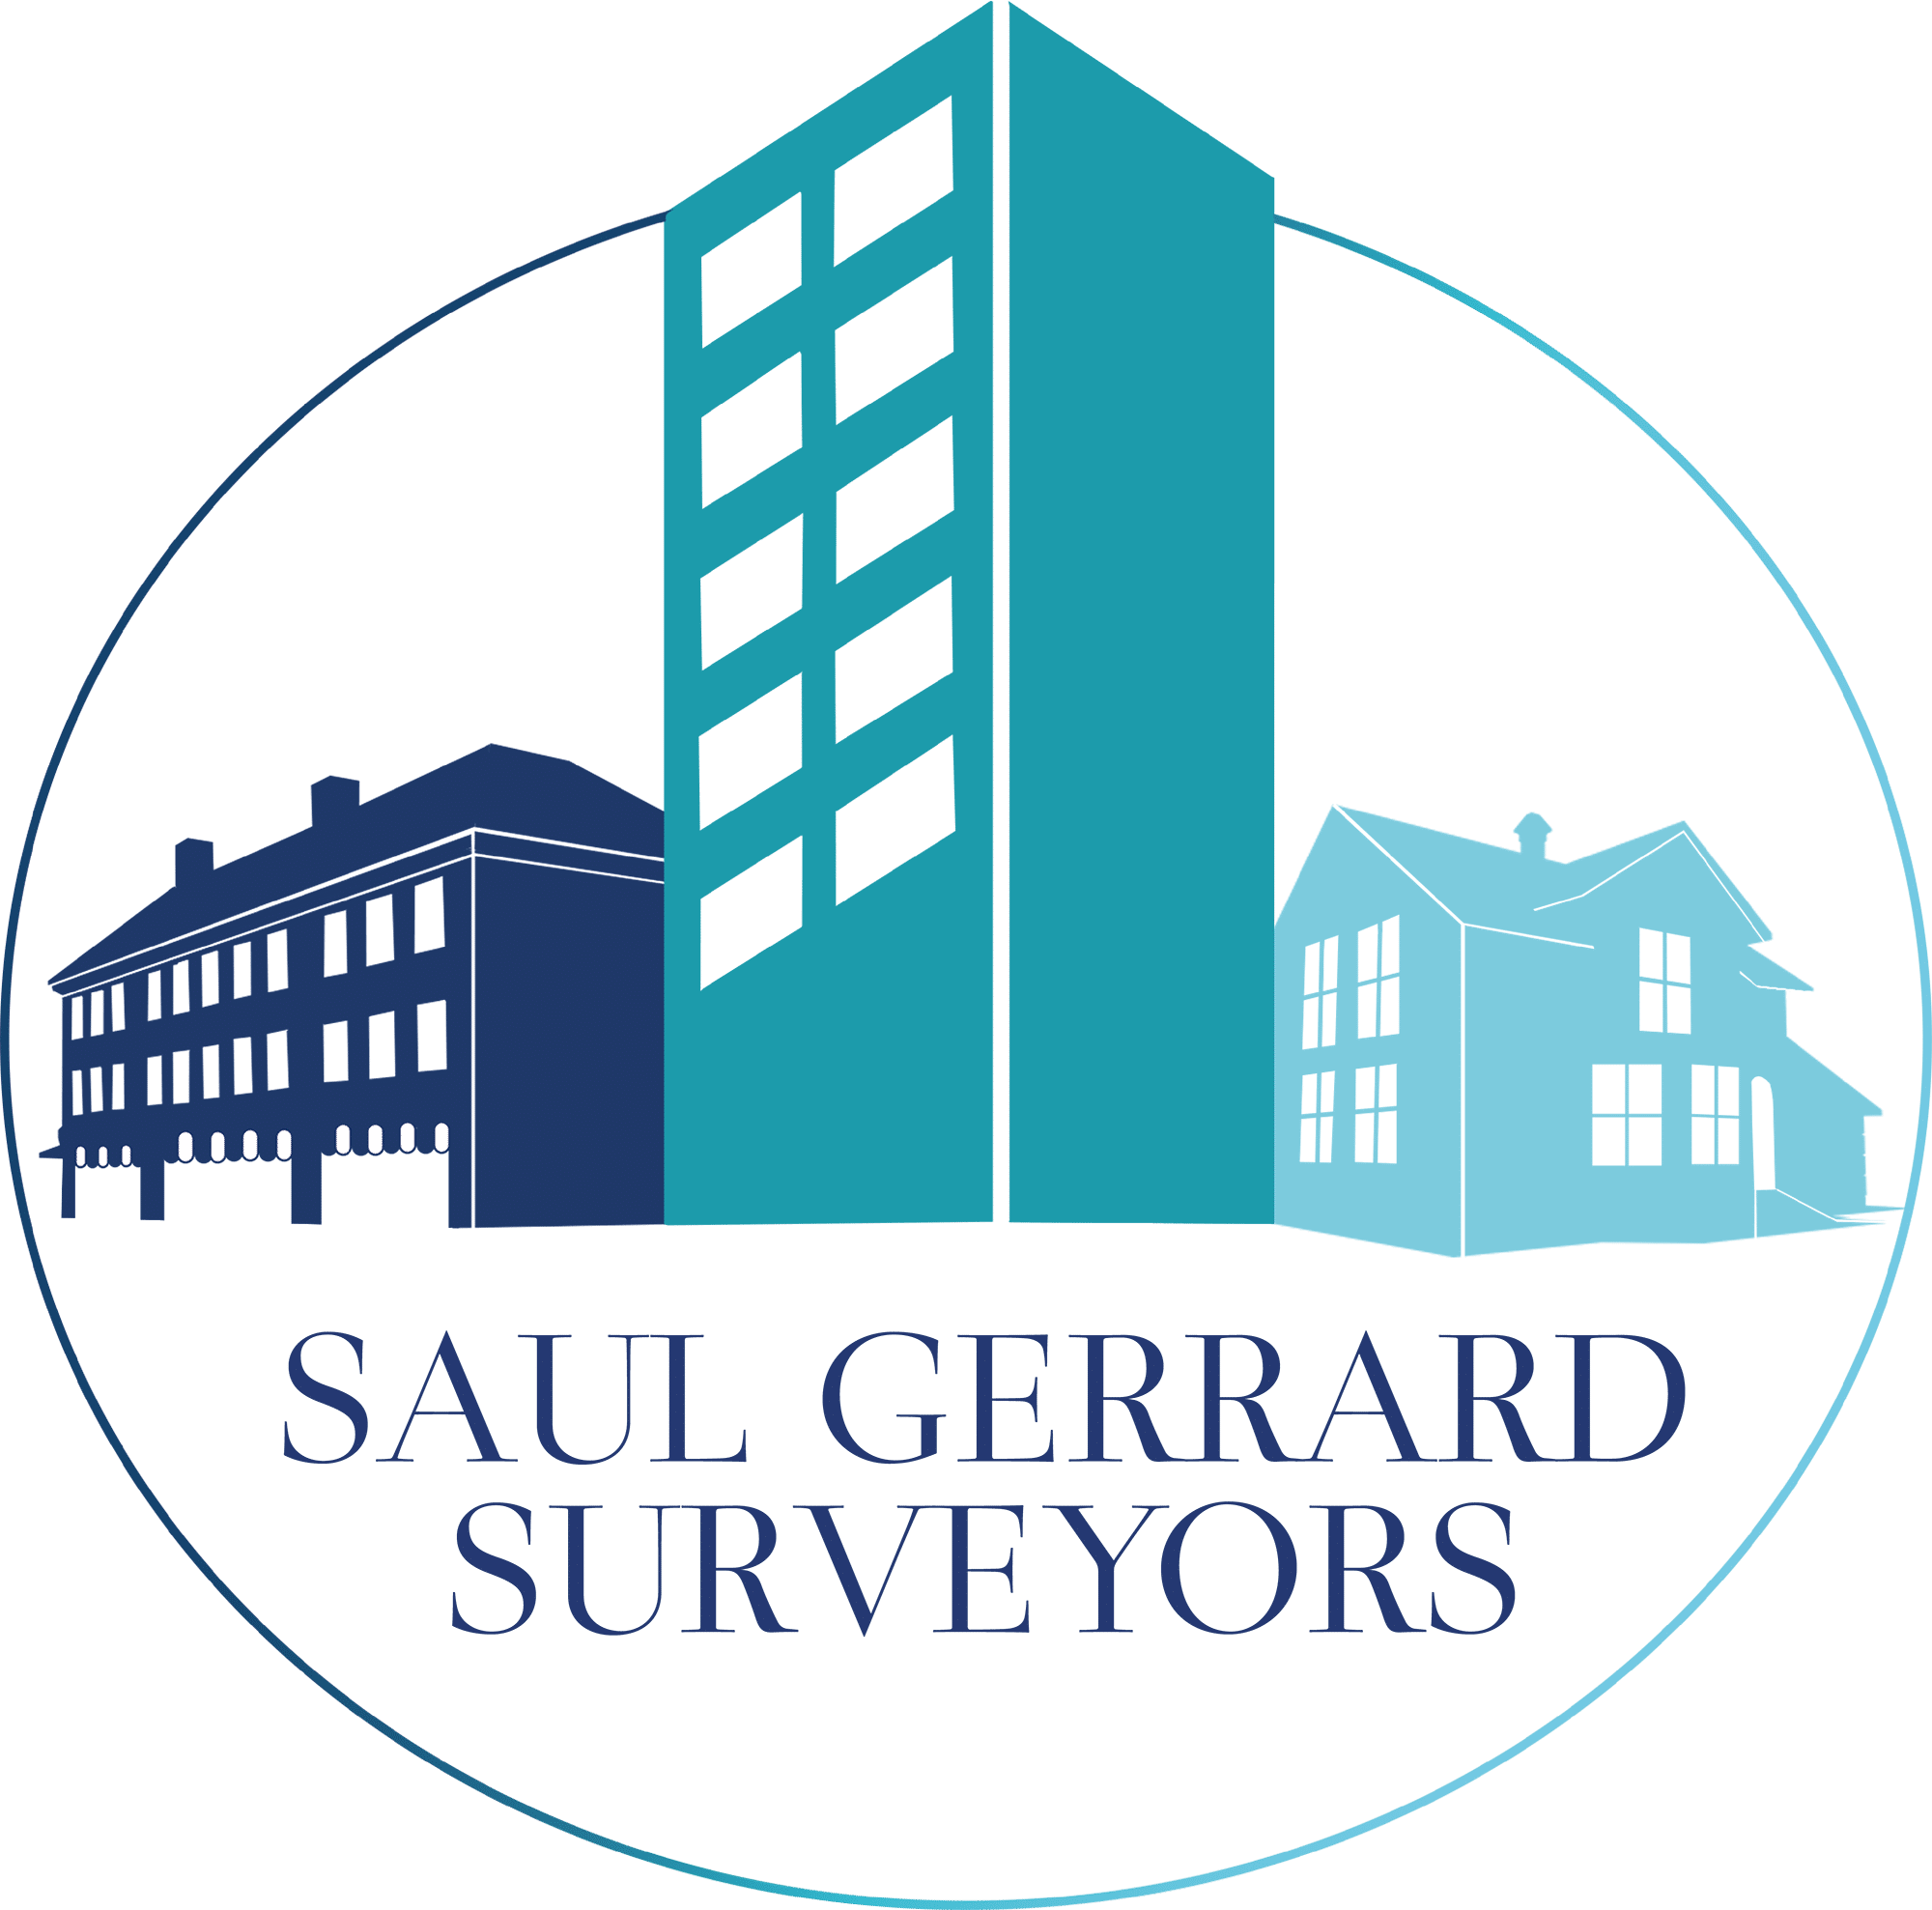 Saul Gerrard Surveyors